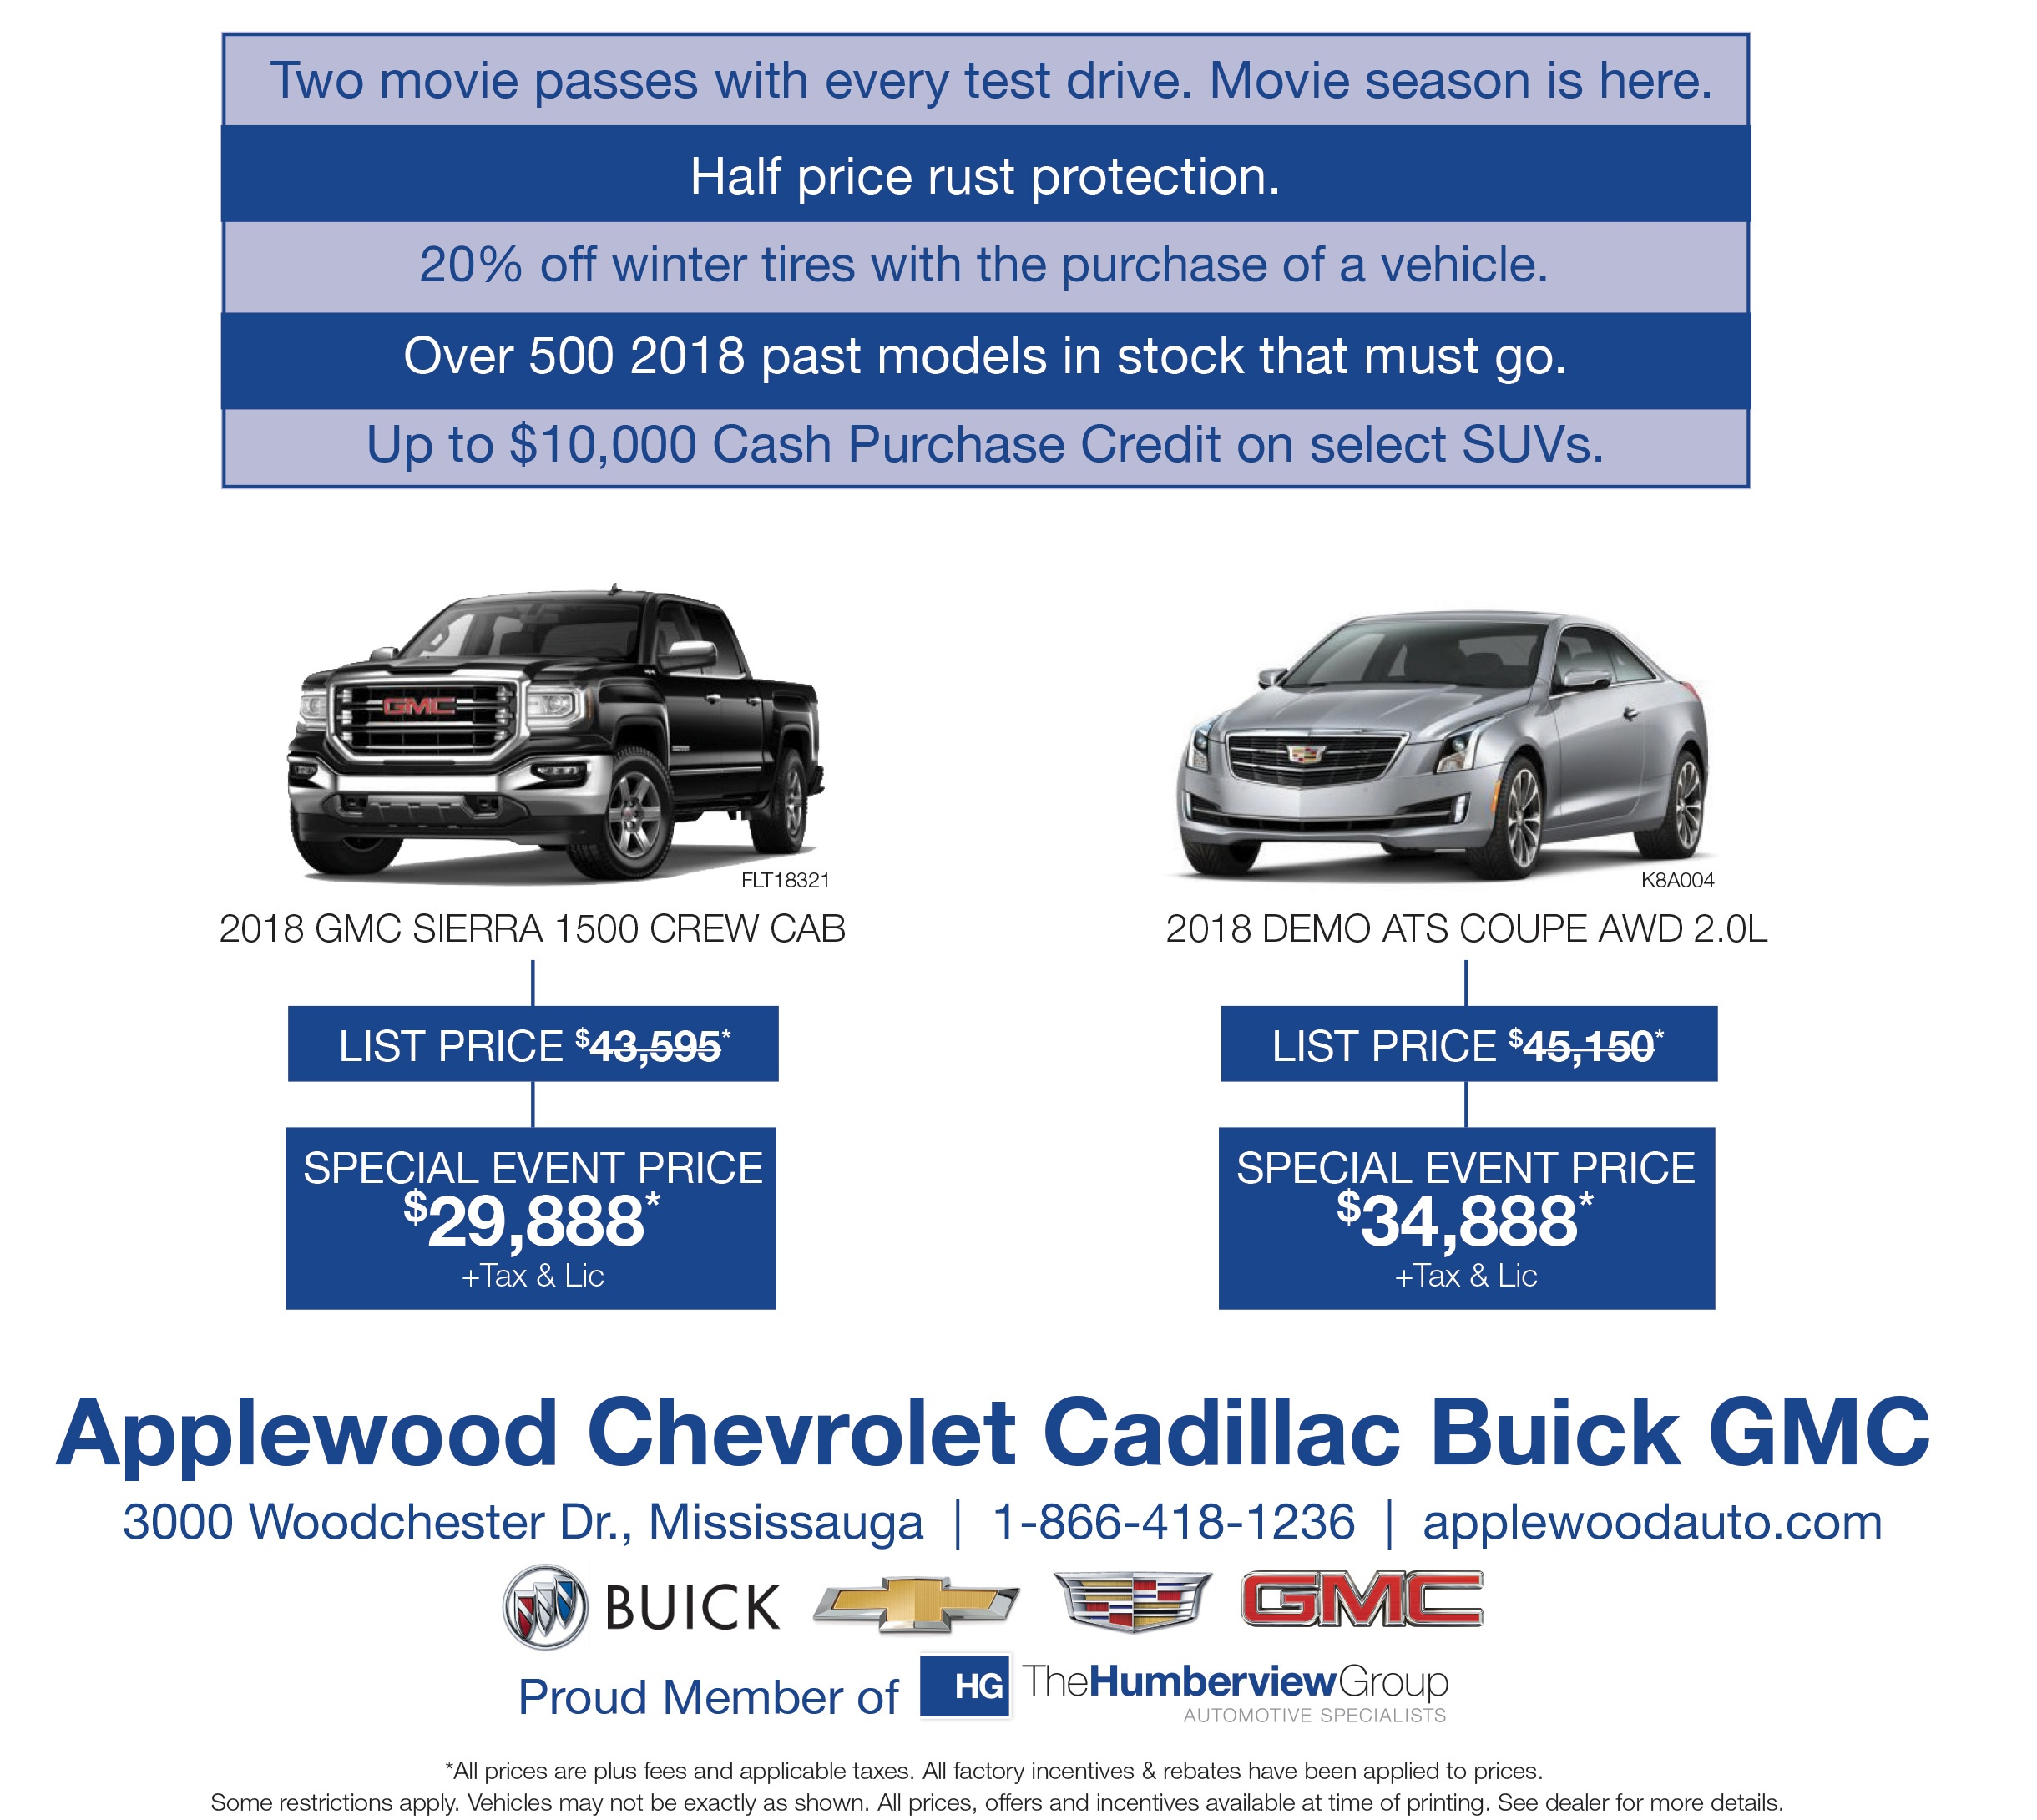 Applewood Chevrolet Cadillac Buick GMC in Mississauga, ON